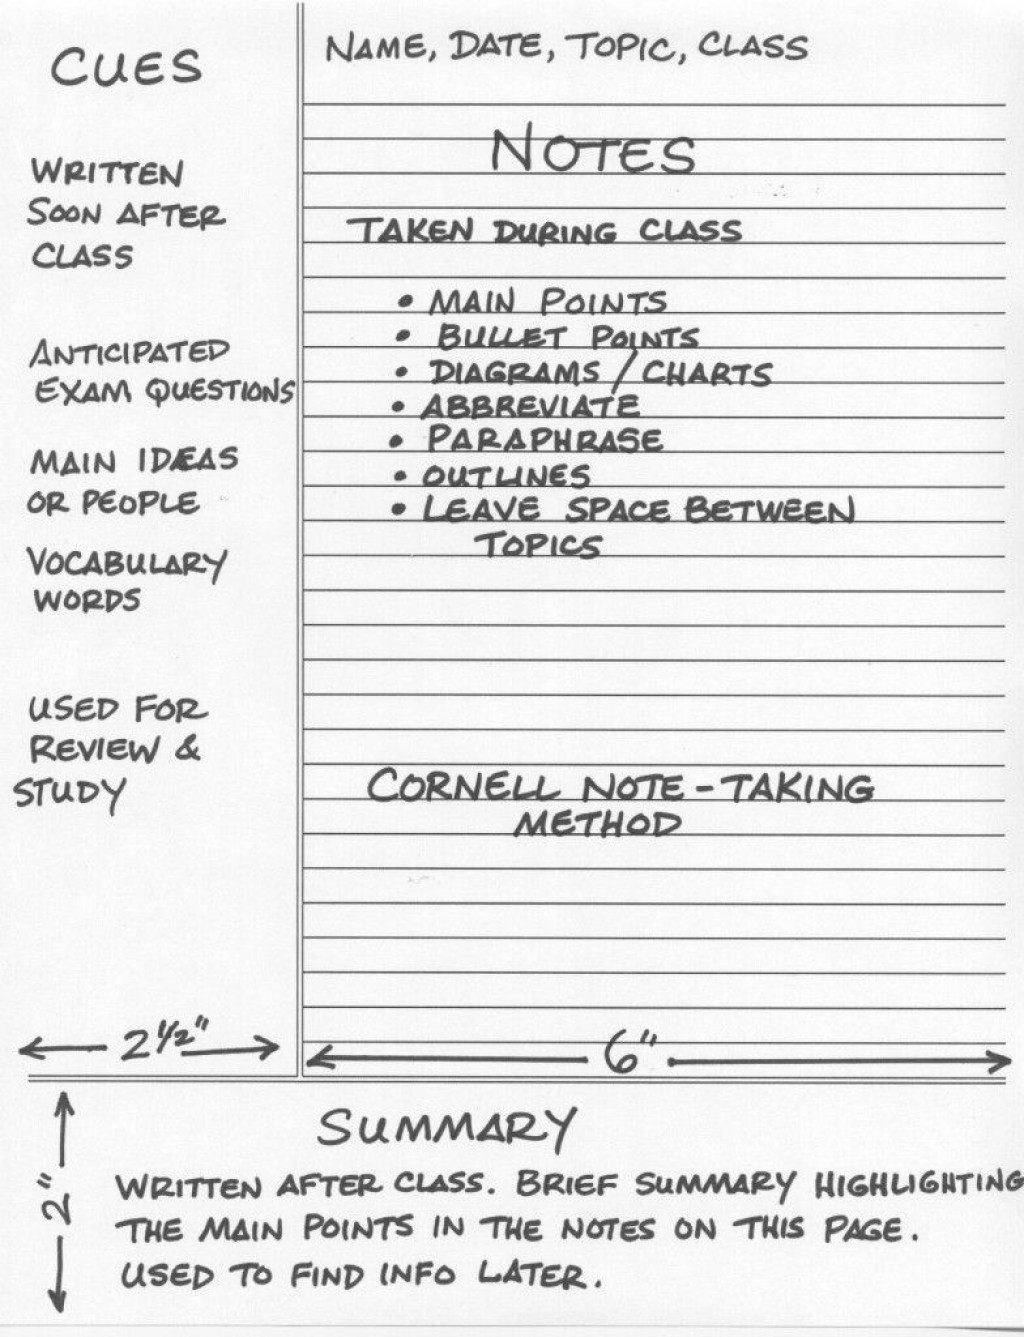 001 Note Taking Methods For Researchs Staggering Research Papers Large